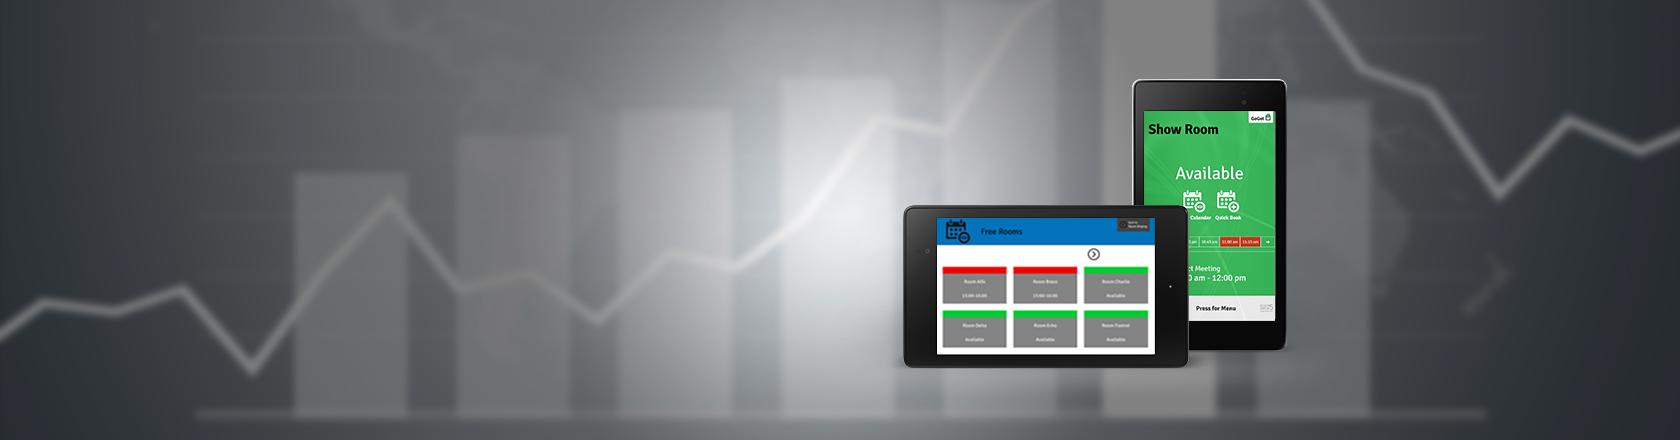 Room Display 5 | Android app for Room Bookings | GoGet